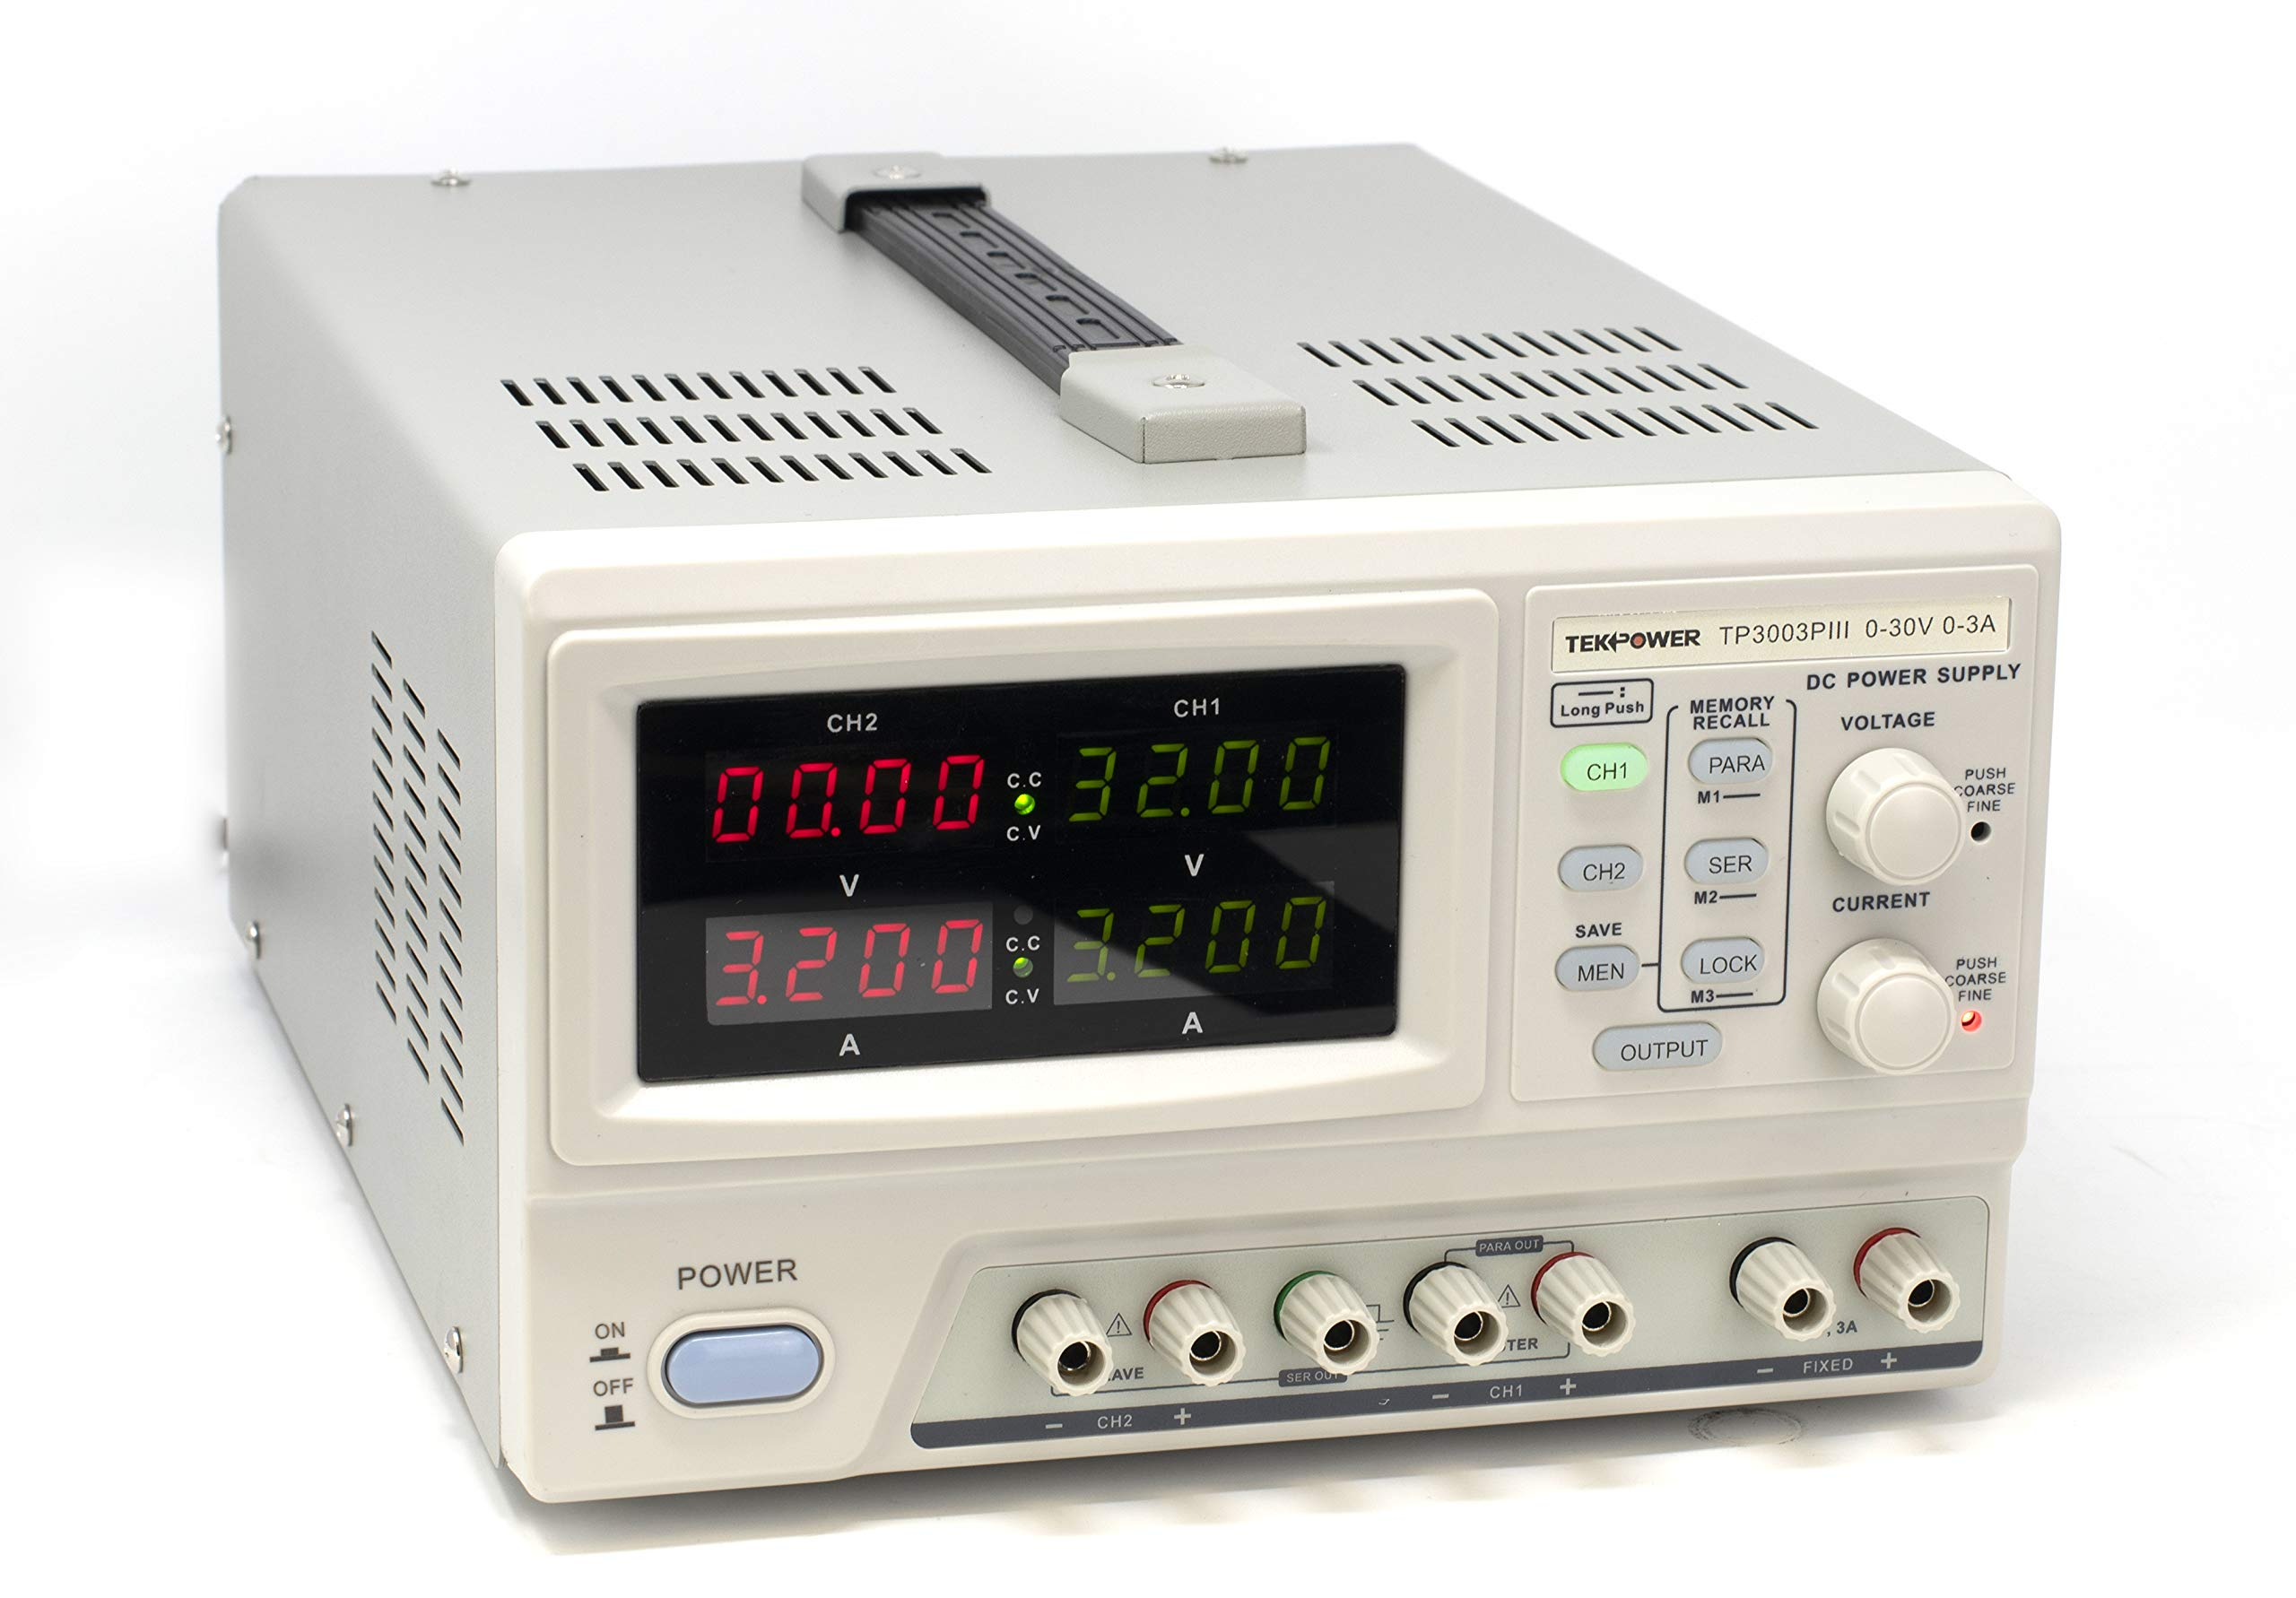 Tekpower TP3003PIII Programmable Variable Regulated Triple Output DC Power Supply, 0-30V at 0-3A